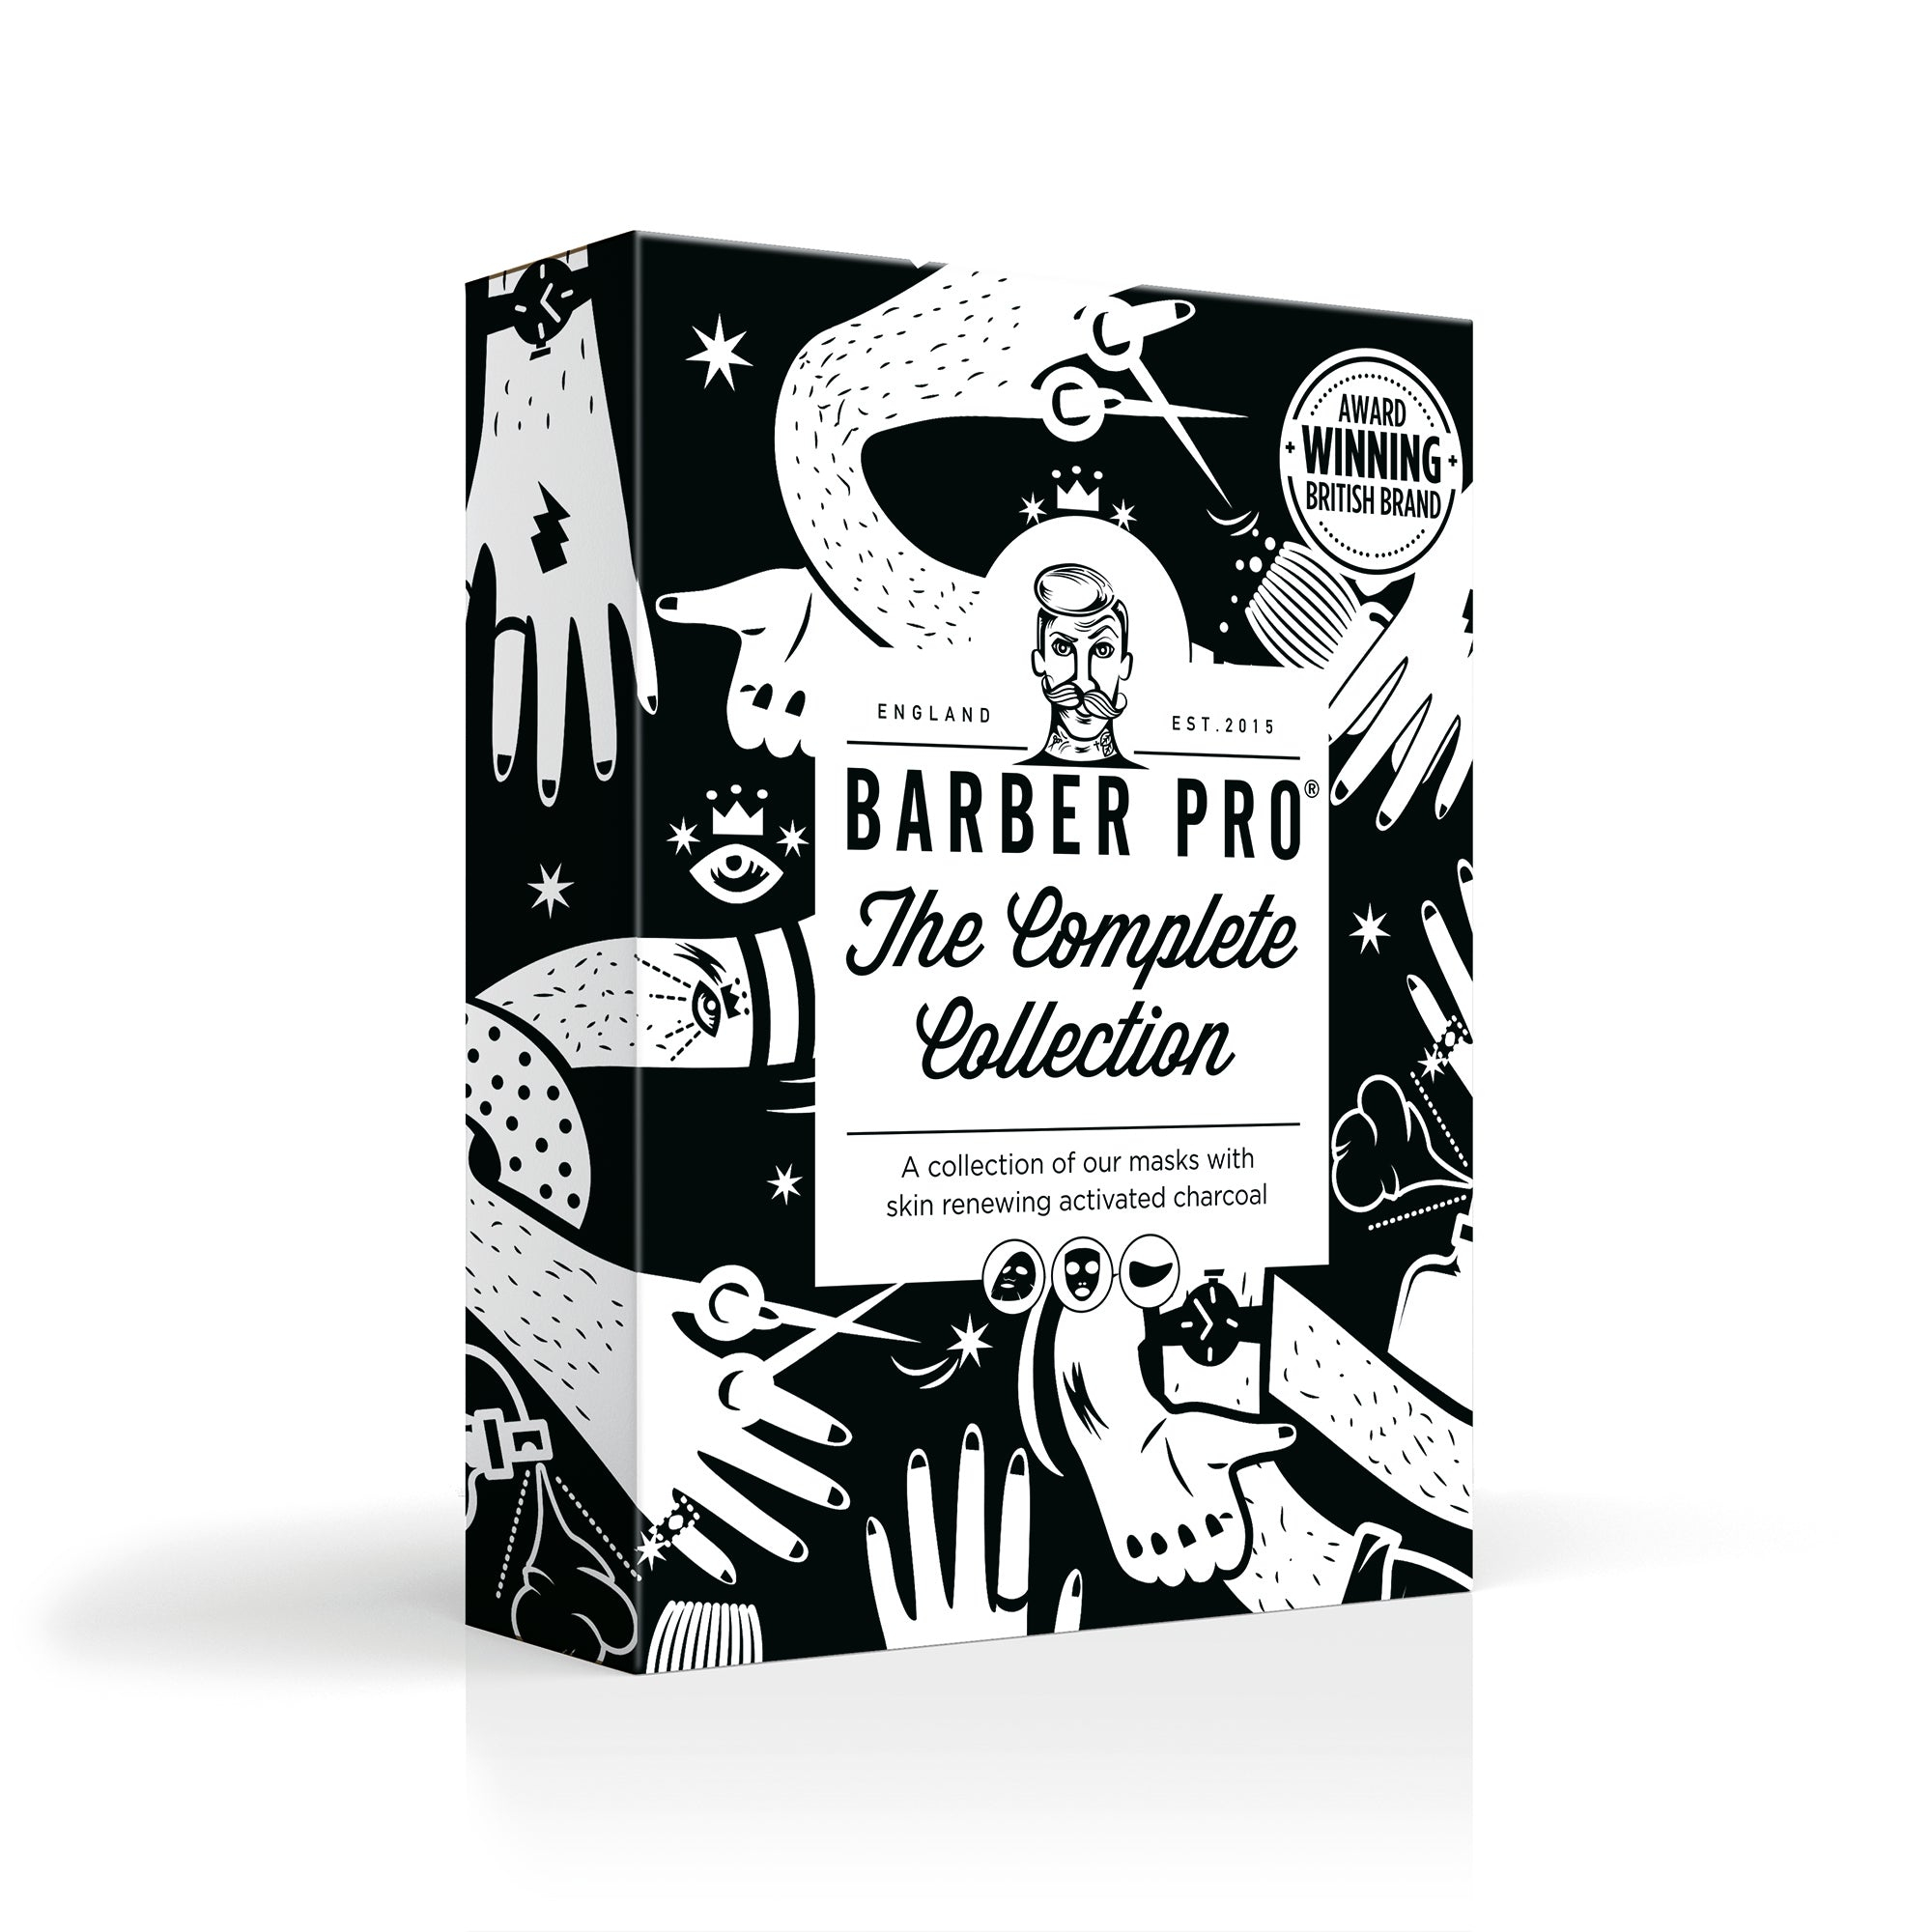 BARBER PRO The Complete Collection